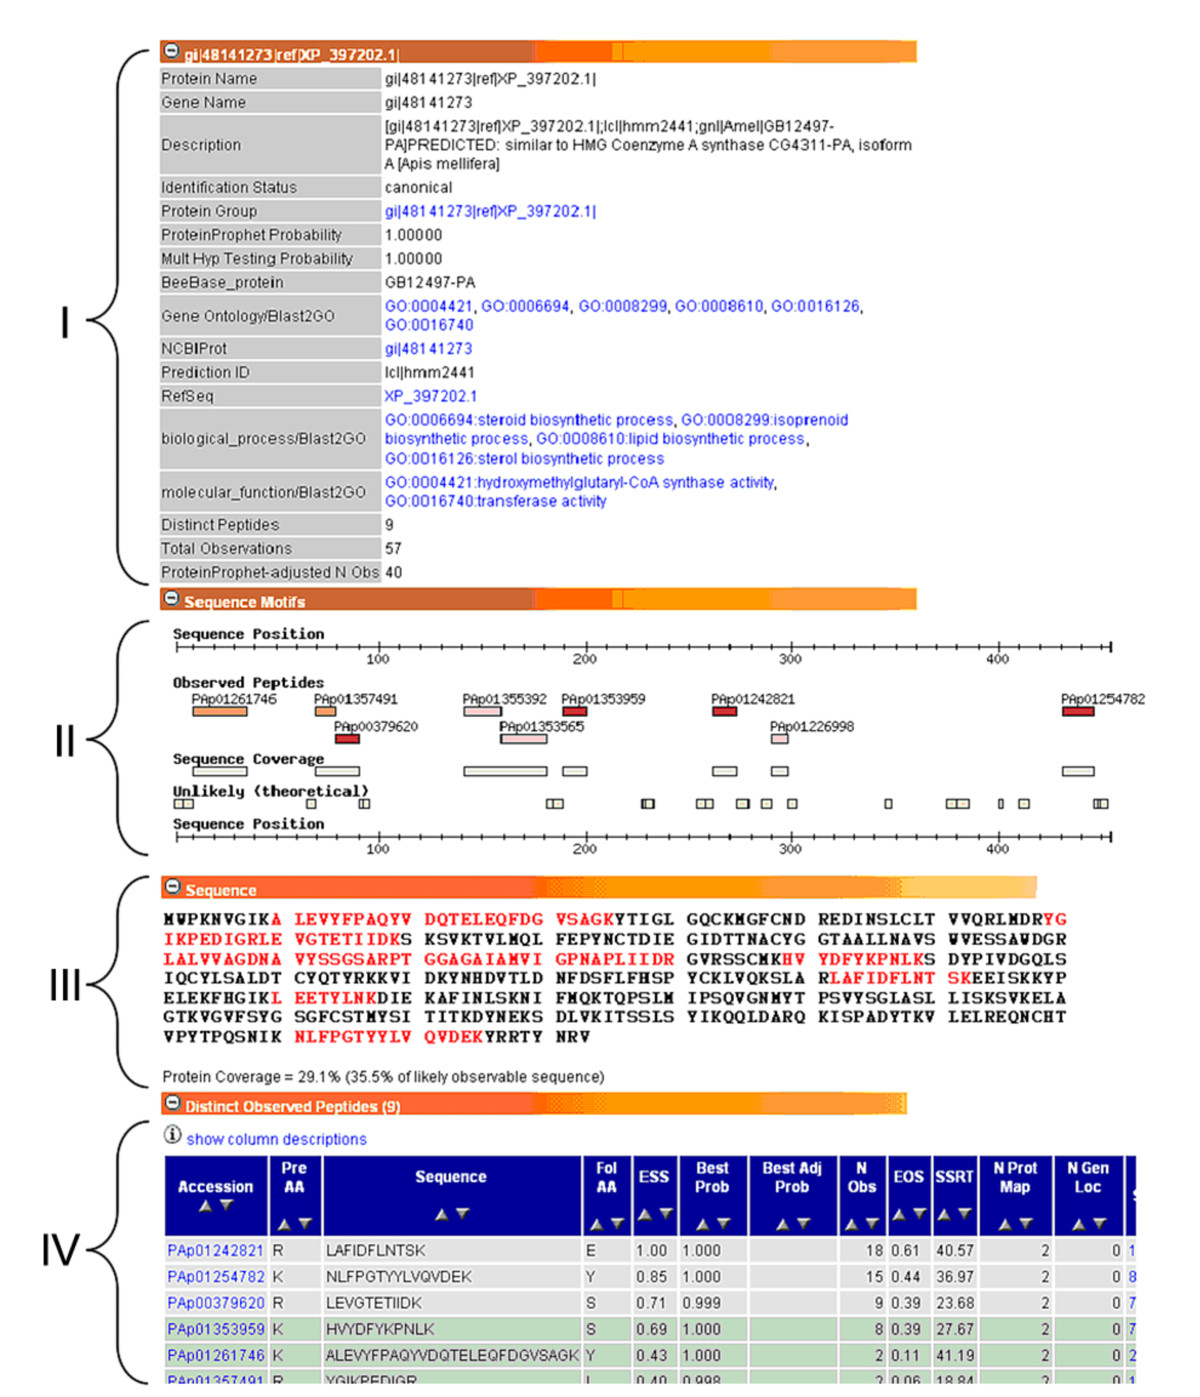 https://static-content.springer.com/image/art%3A10.1186%2F1471-2164-12-290/MediaObjects/12864_2011_Article_3408_Fig3_HTML.jpg